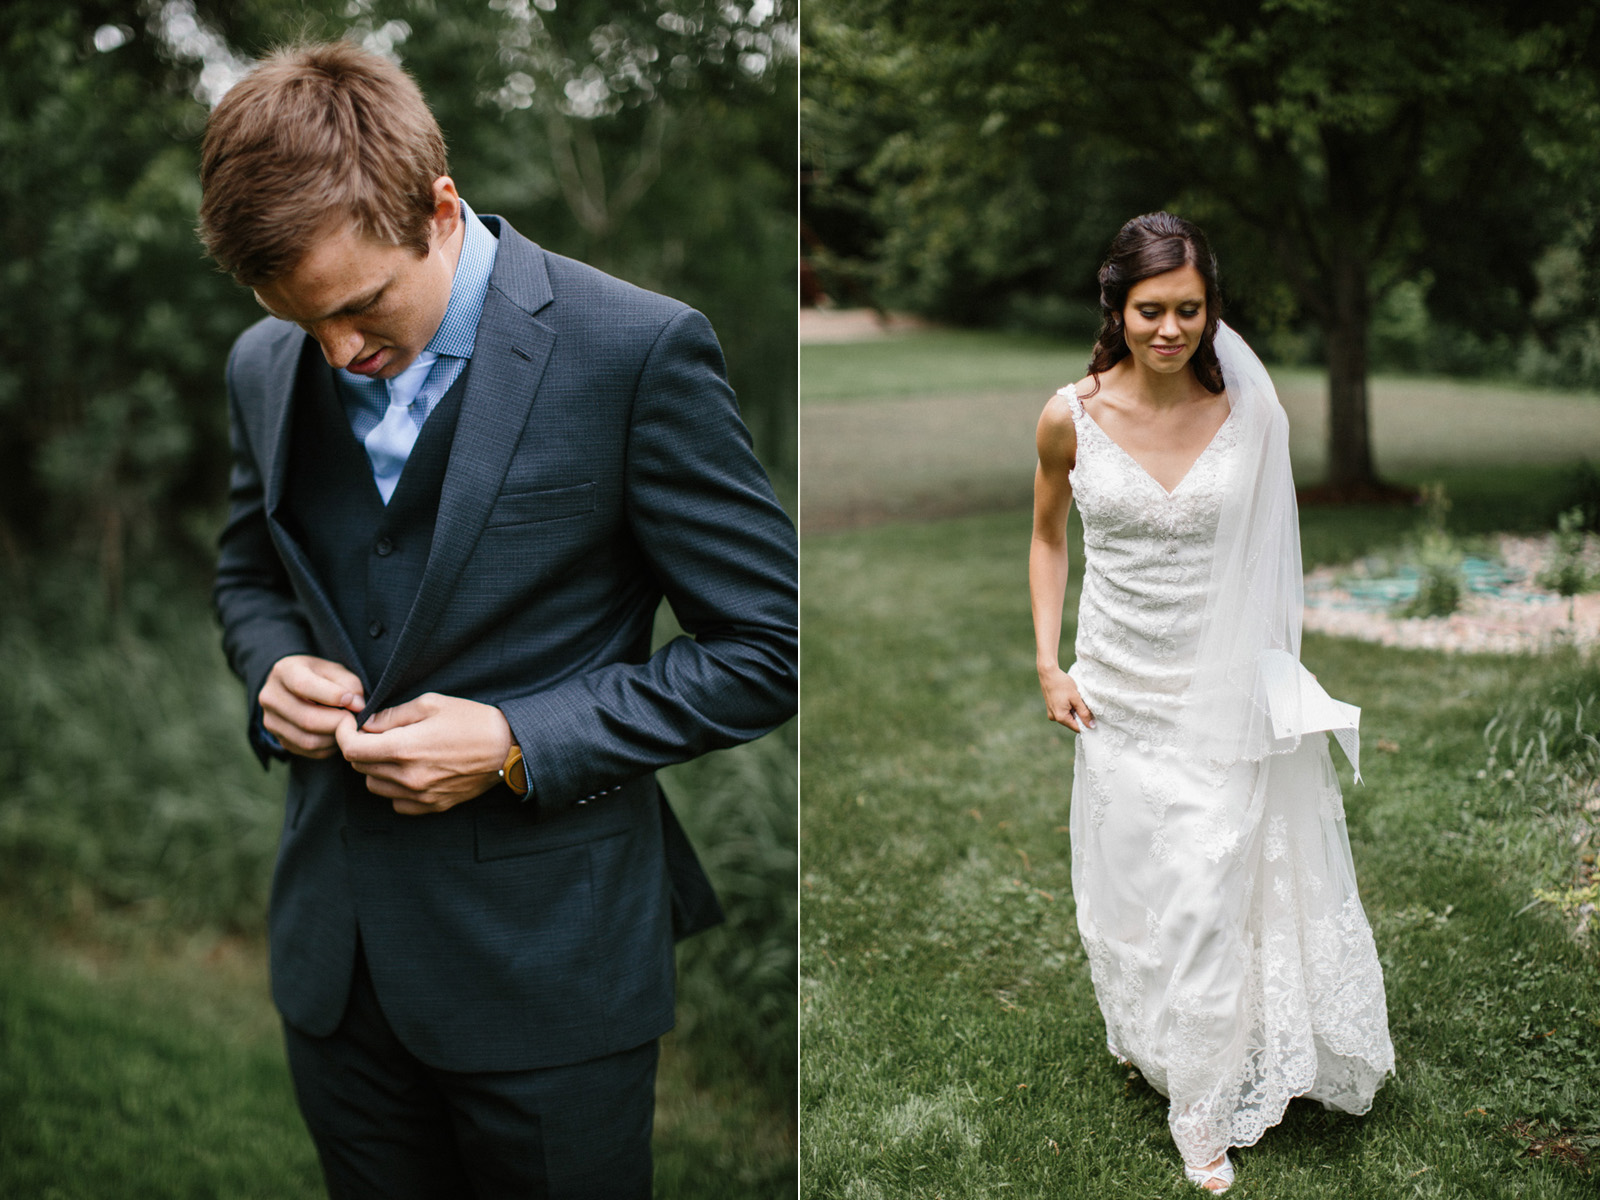 Outdoor_Wedding_SiouxFalls_MaryJoWegnerArboretum_Photographer_Calli&Jon_031.jpg